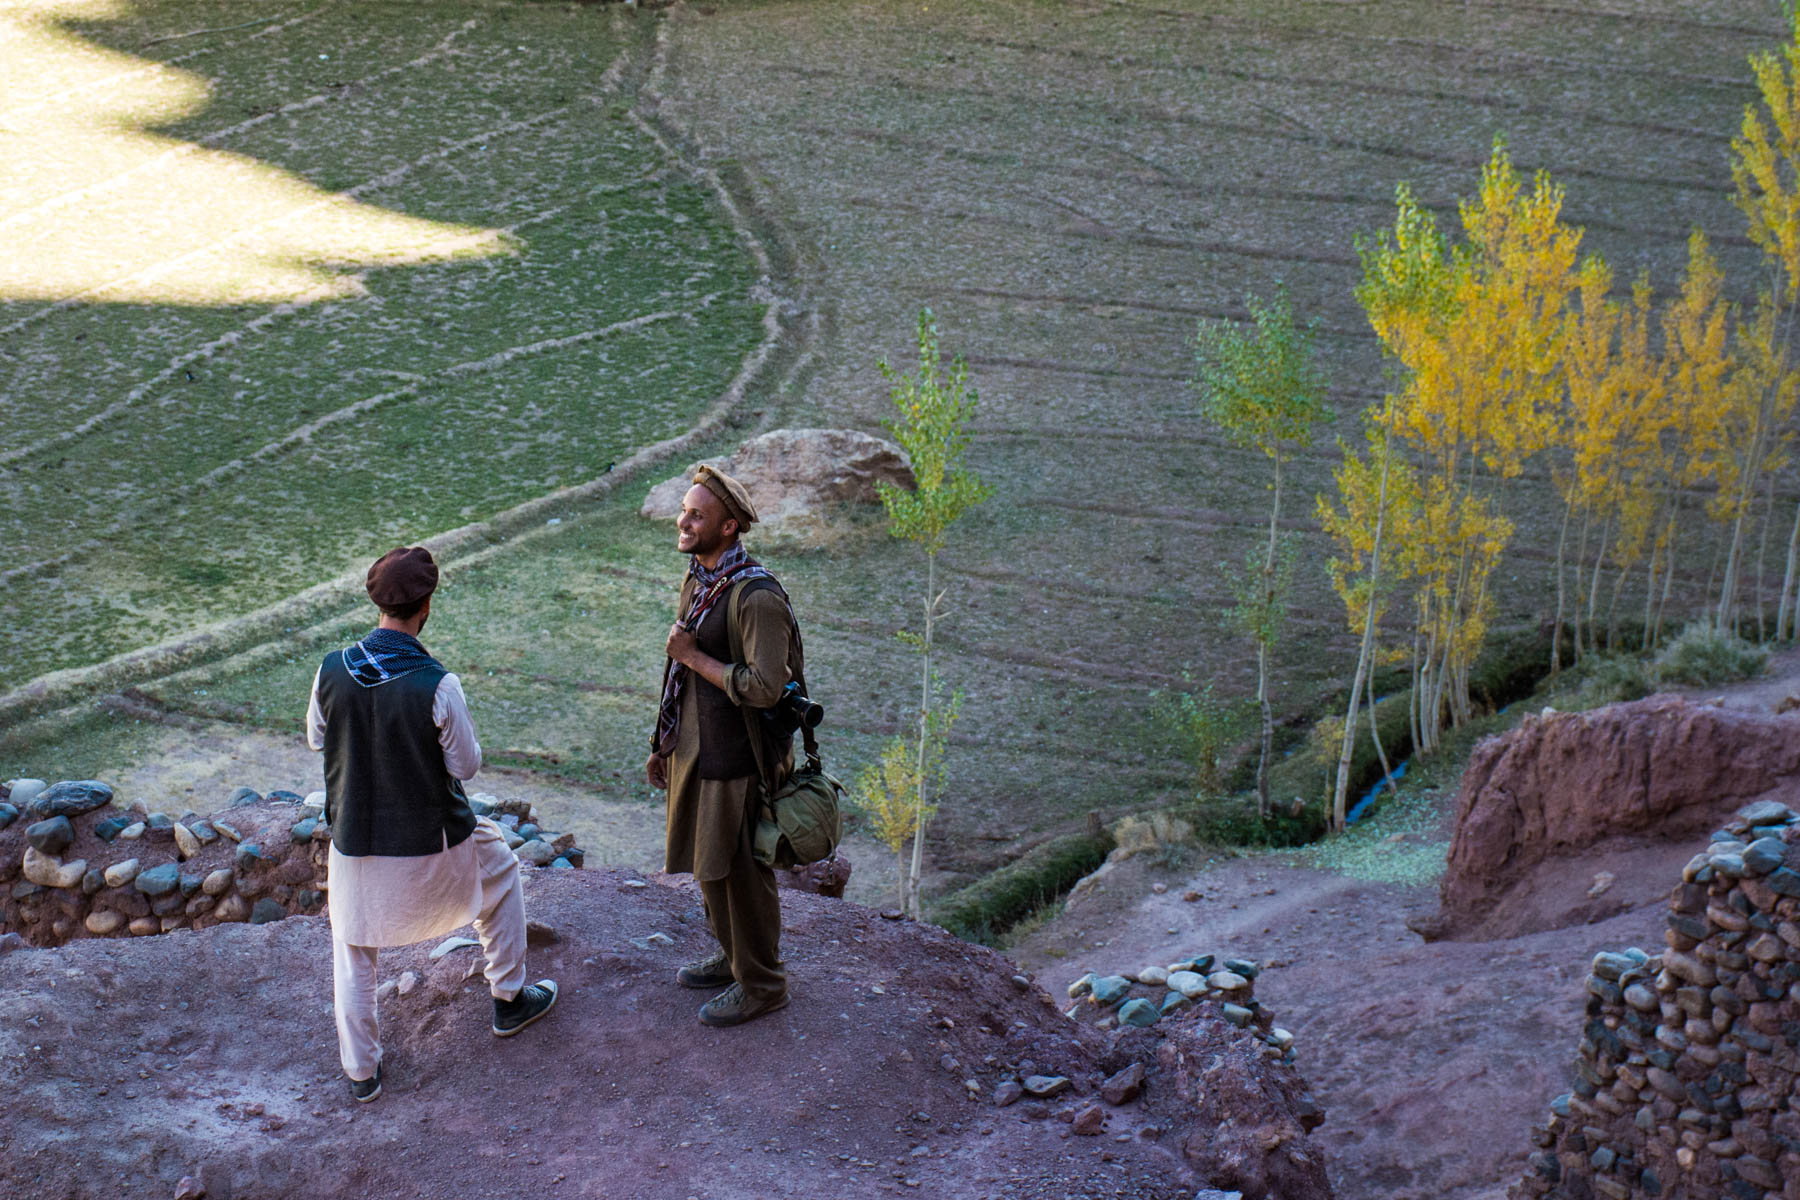 Tourists wearing Afghan traditional clothes in Bamiyan, Afghanistan - Lost With Purpose